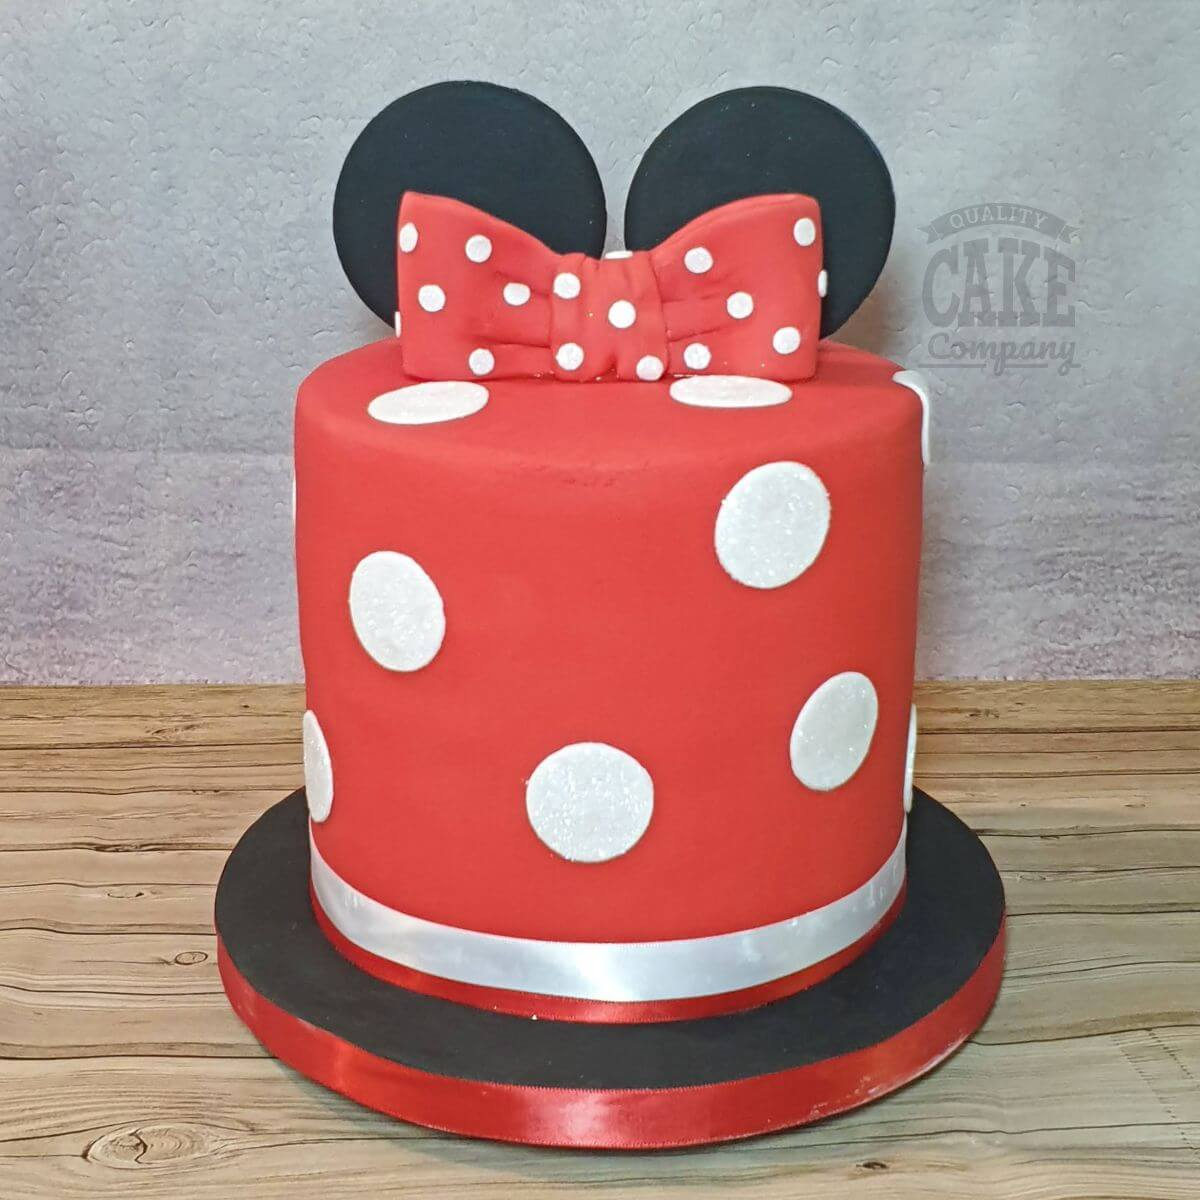 Remarkable Minnie Mouse Theme Cakes Quality Cake Company Funny Birthday Cards Online Alyptdamsfinfo